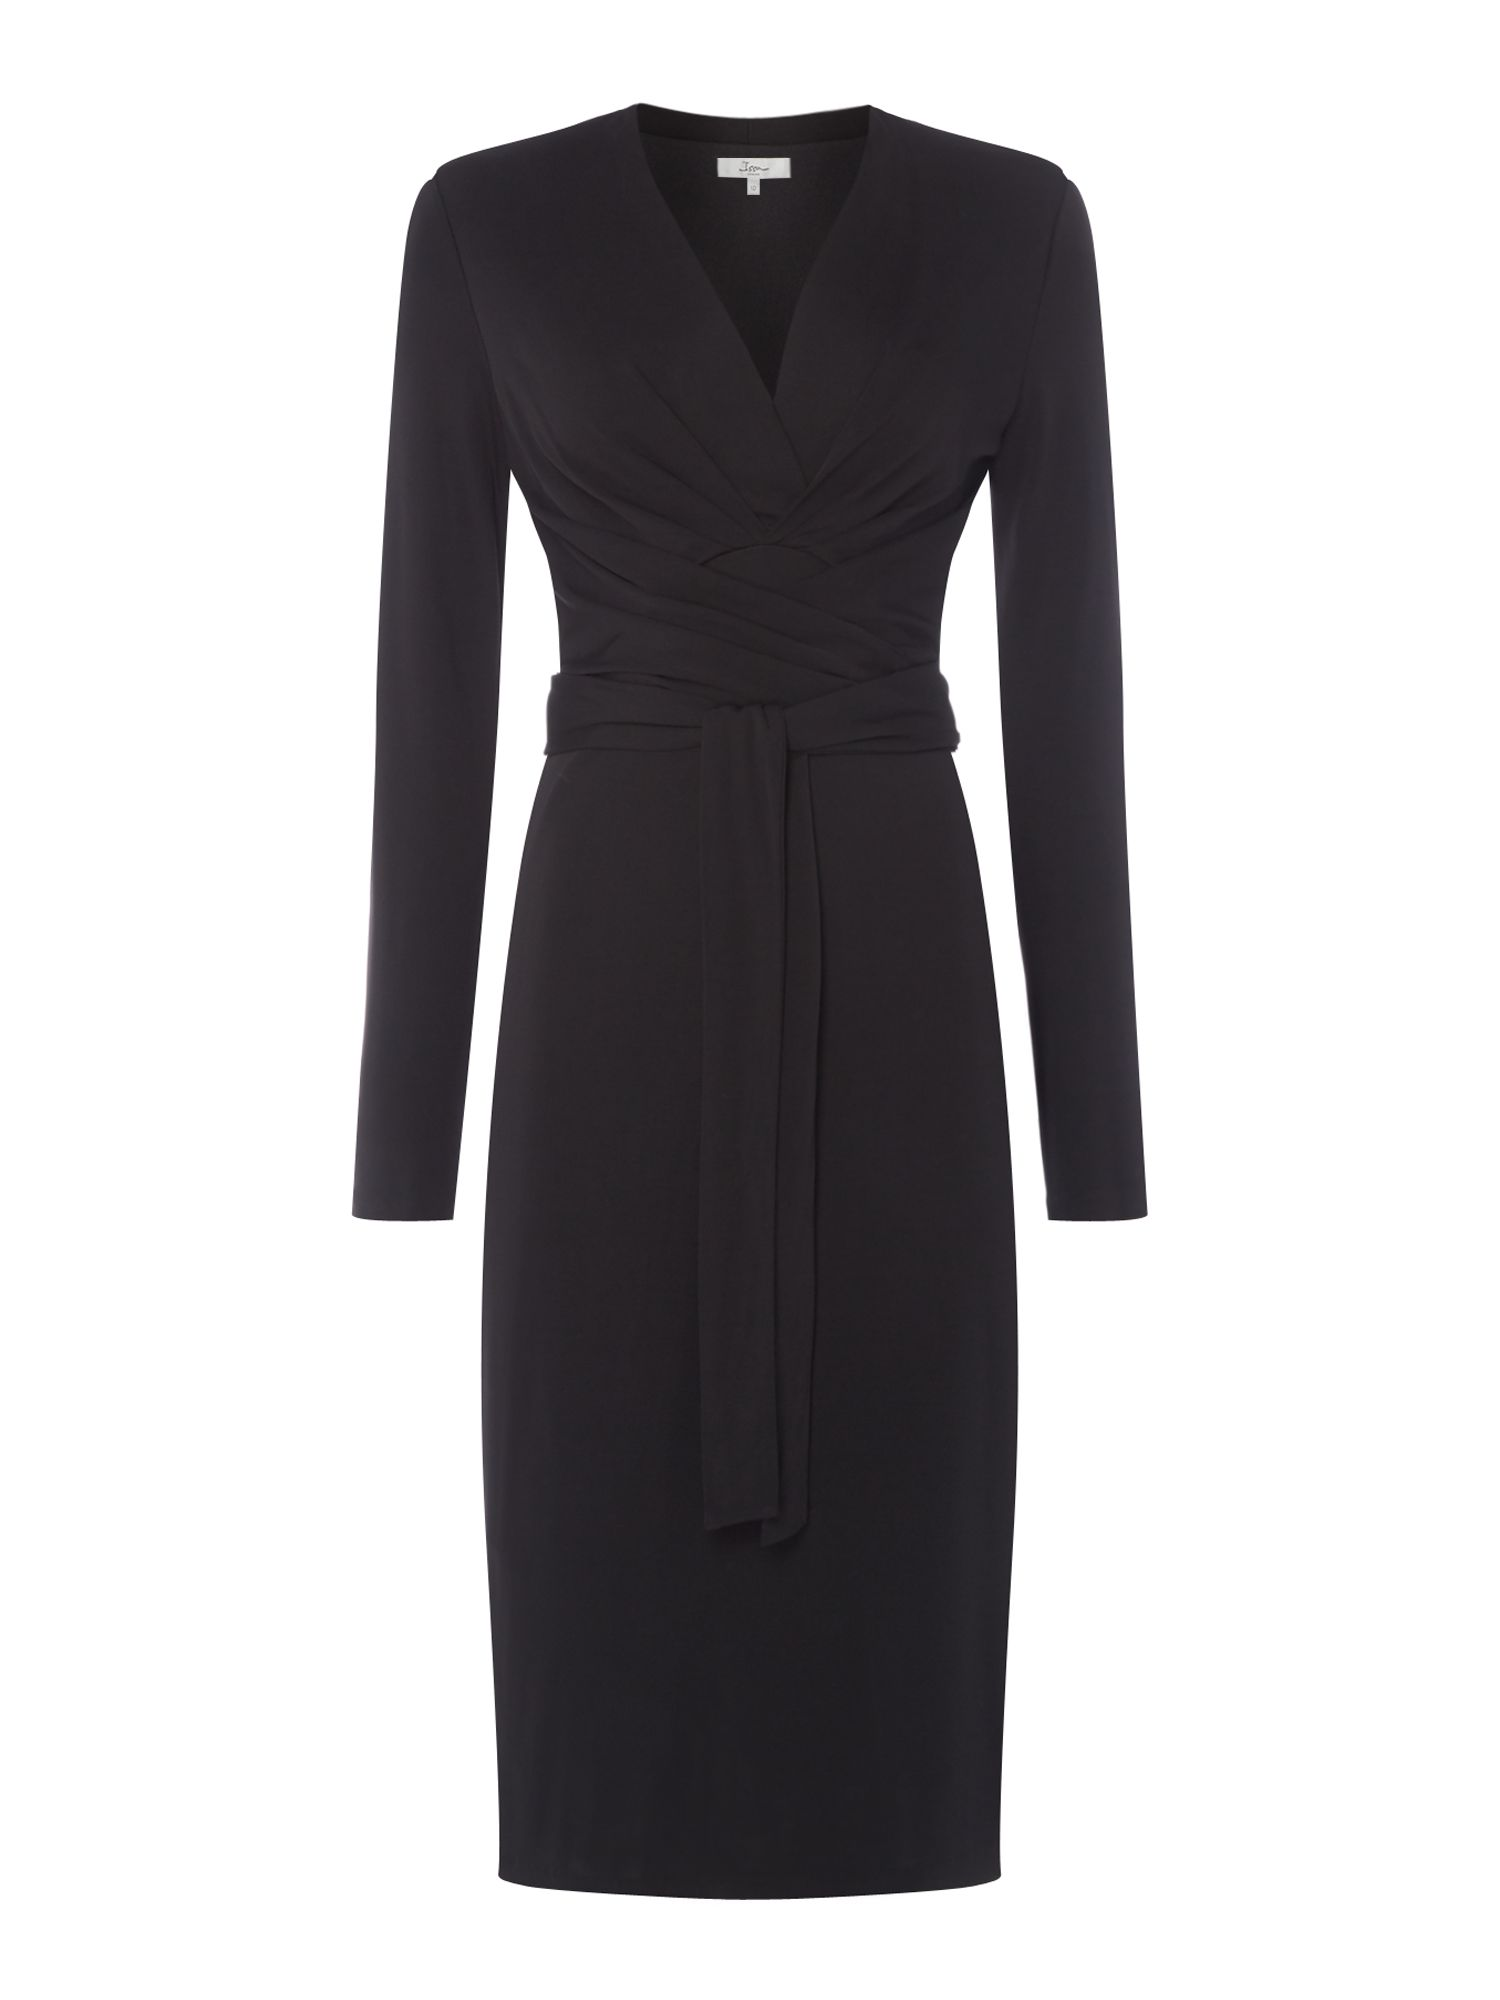 ISSA Kate Tie Wrap Dress, Black